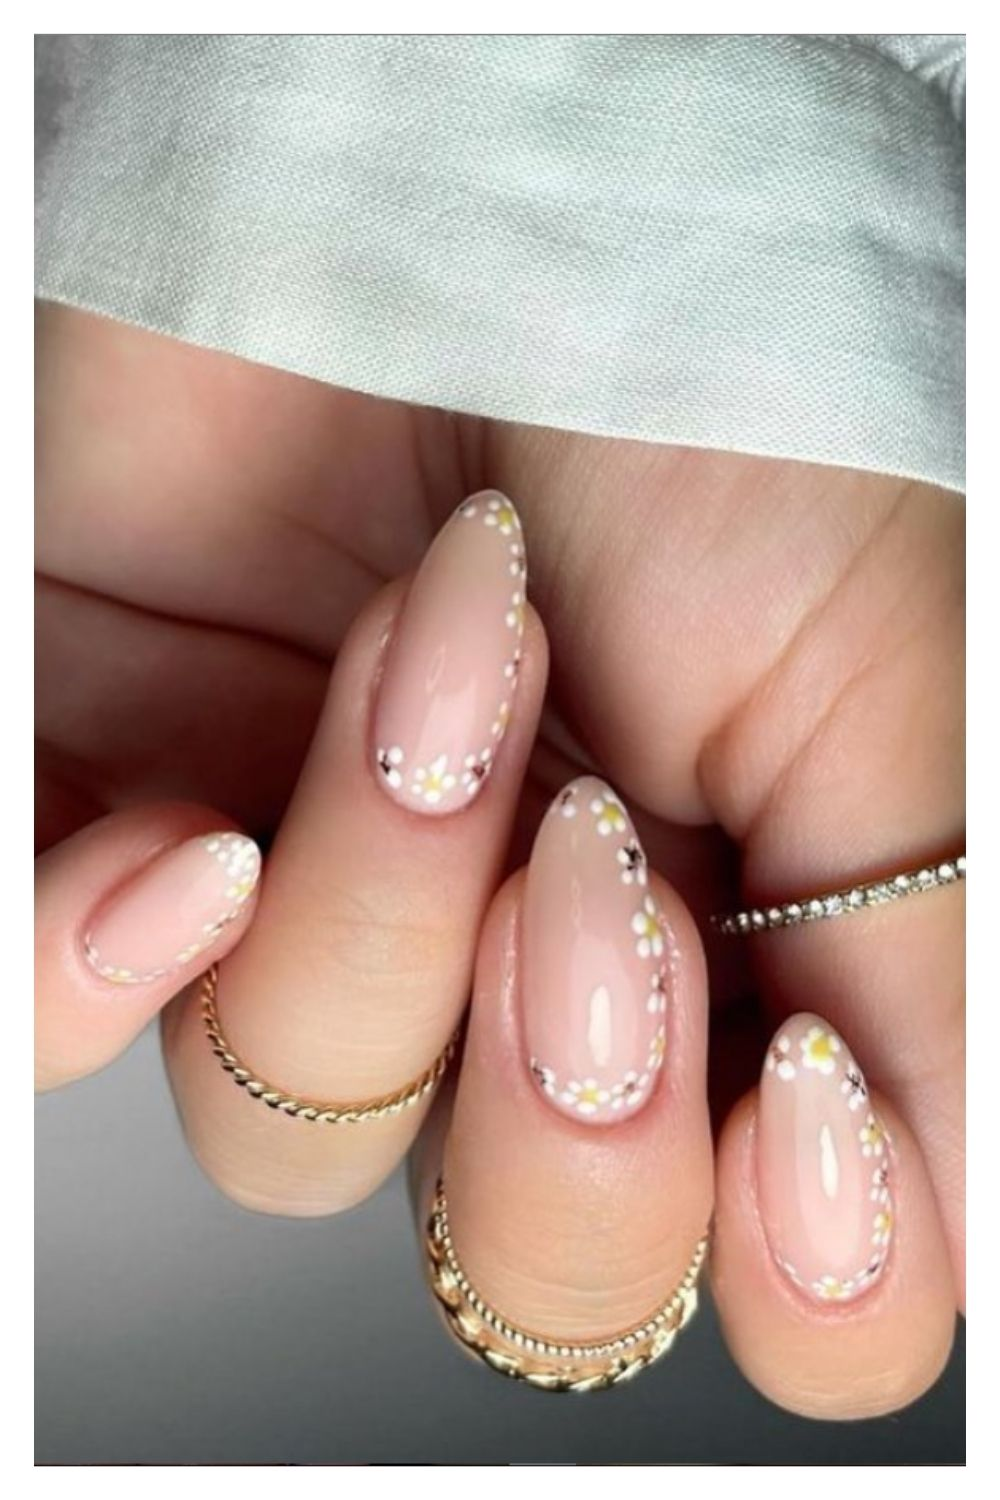 Almond nails designs with flower